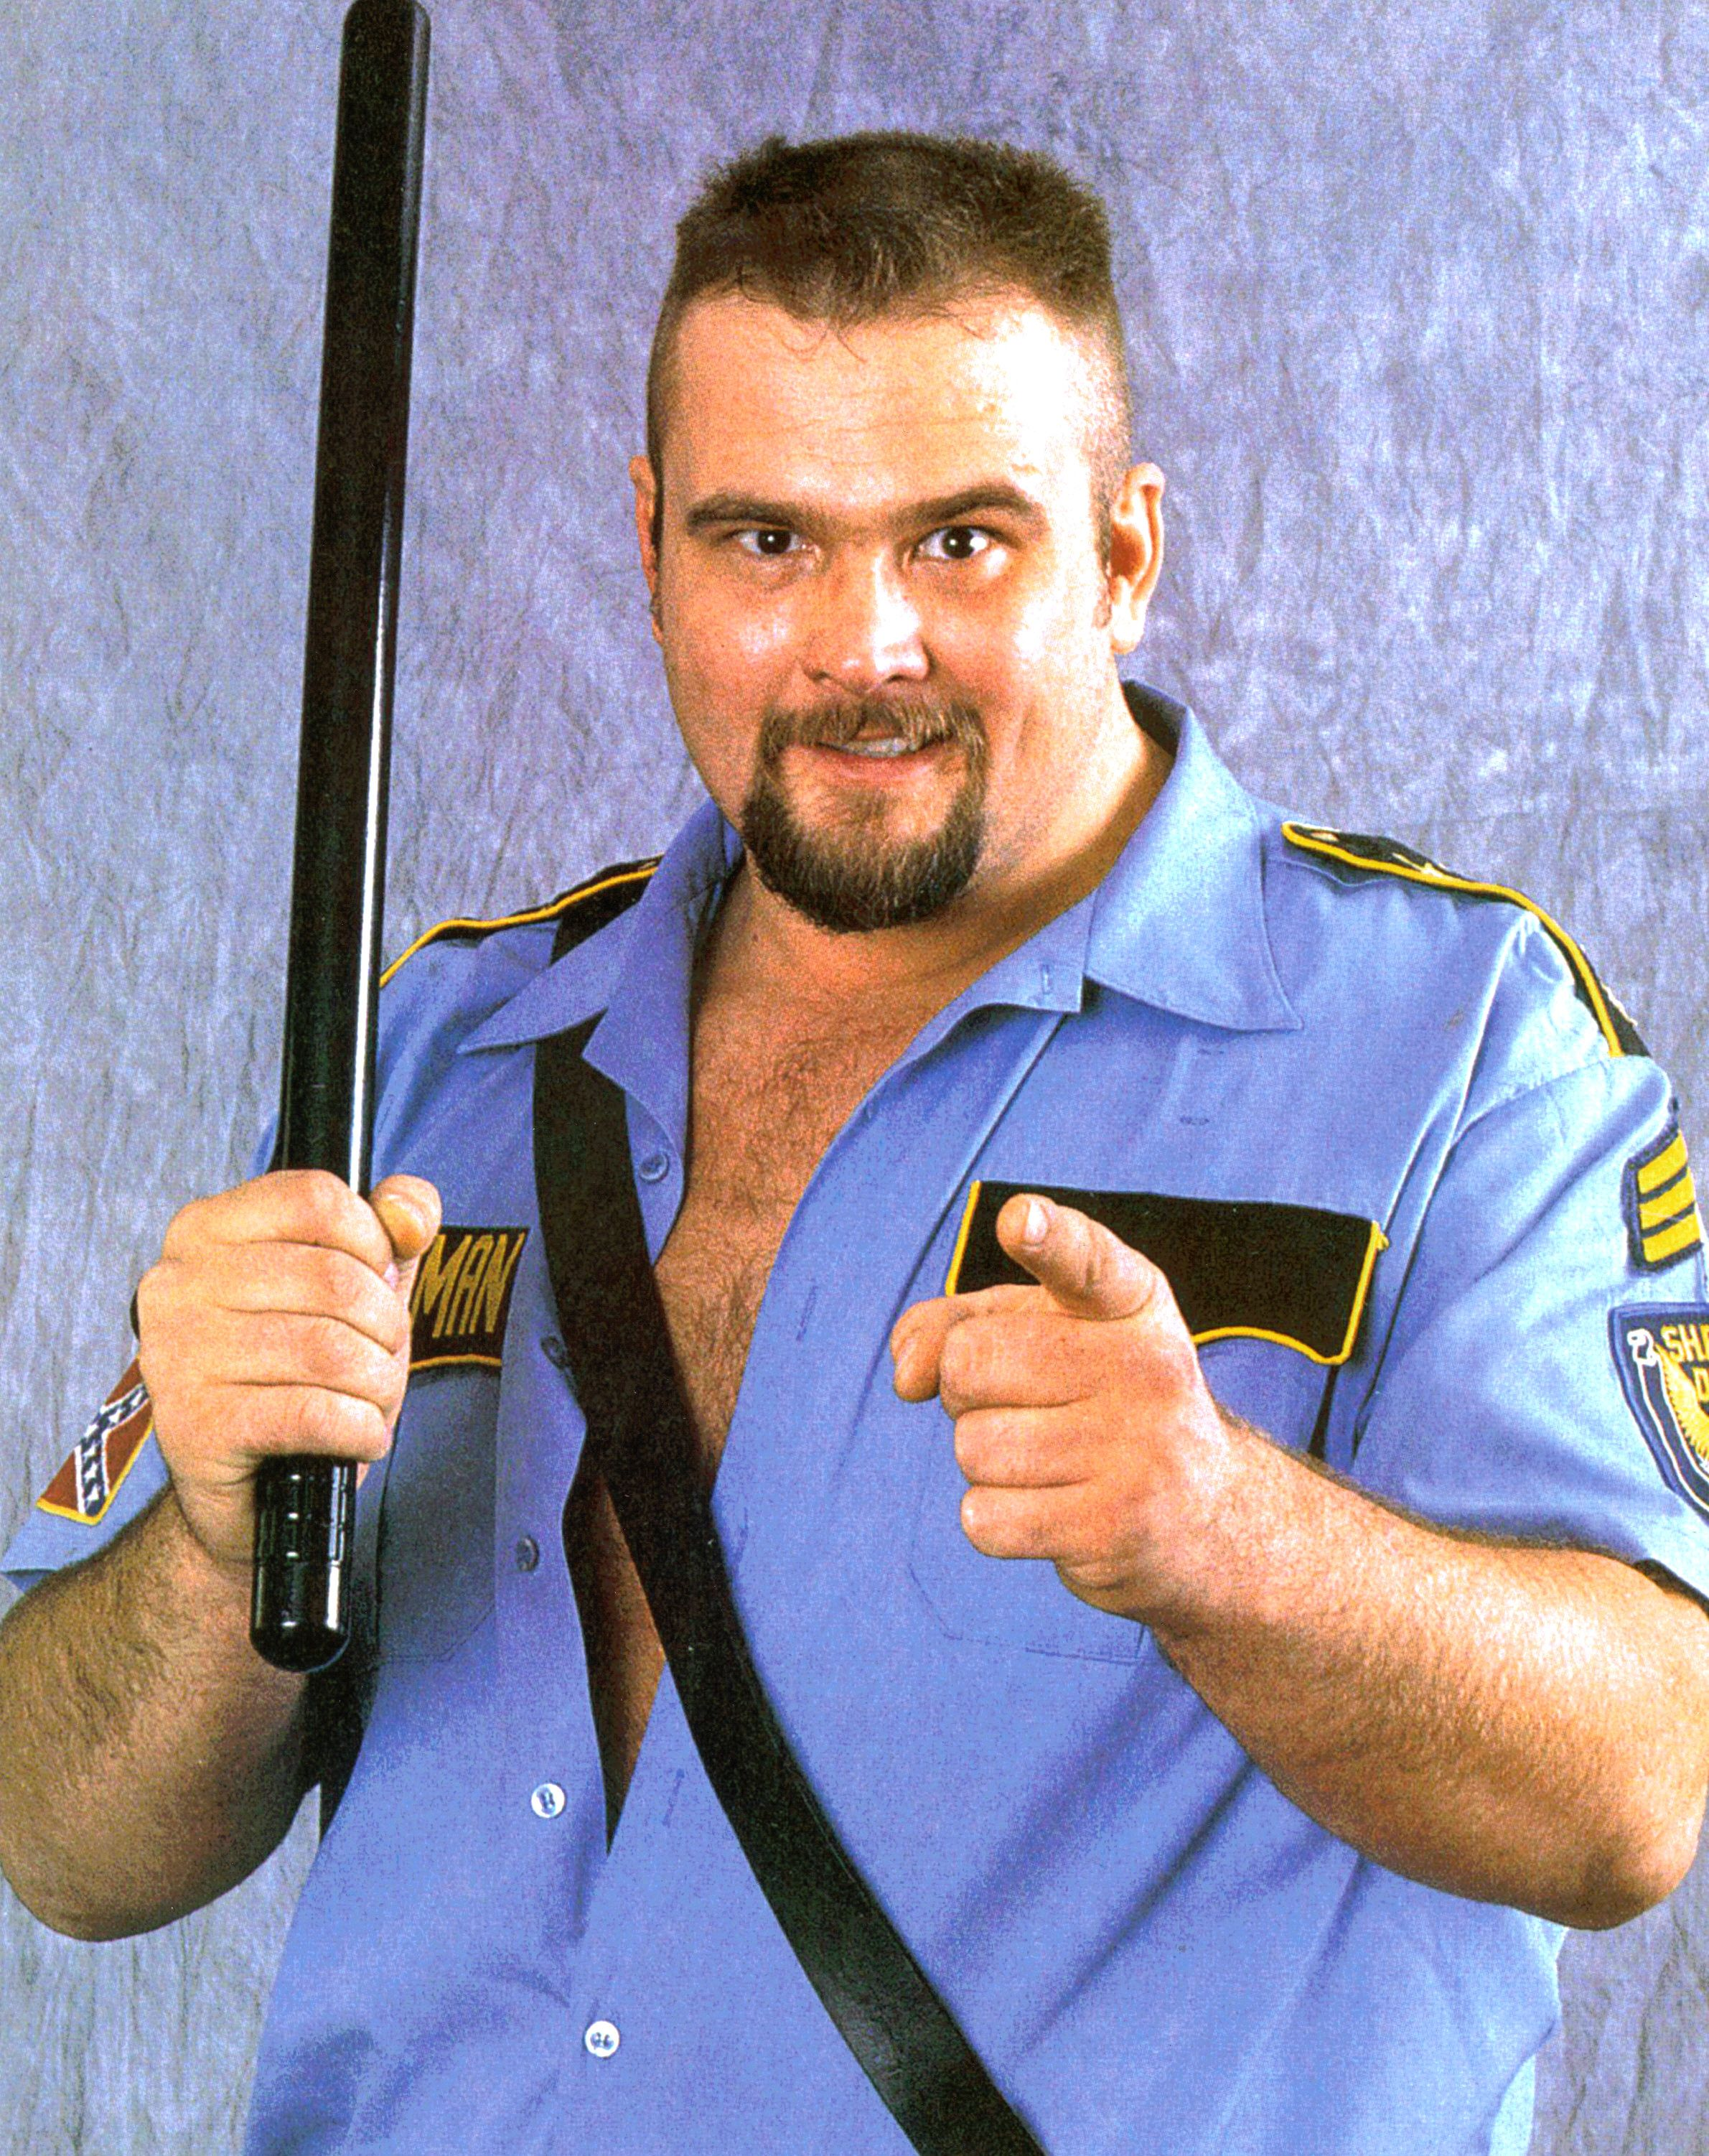 Big Boss Man One Of My Favorite Wrestlers From The 80s One Of Many